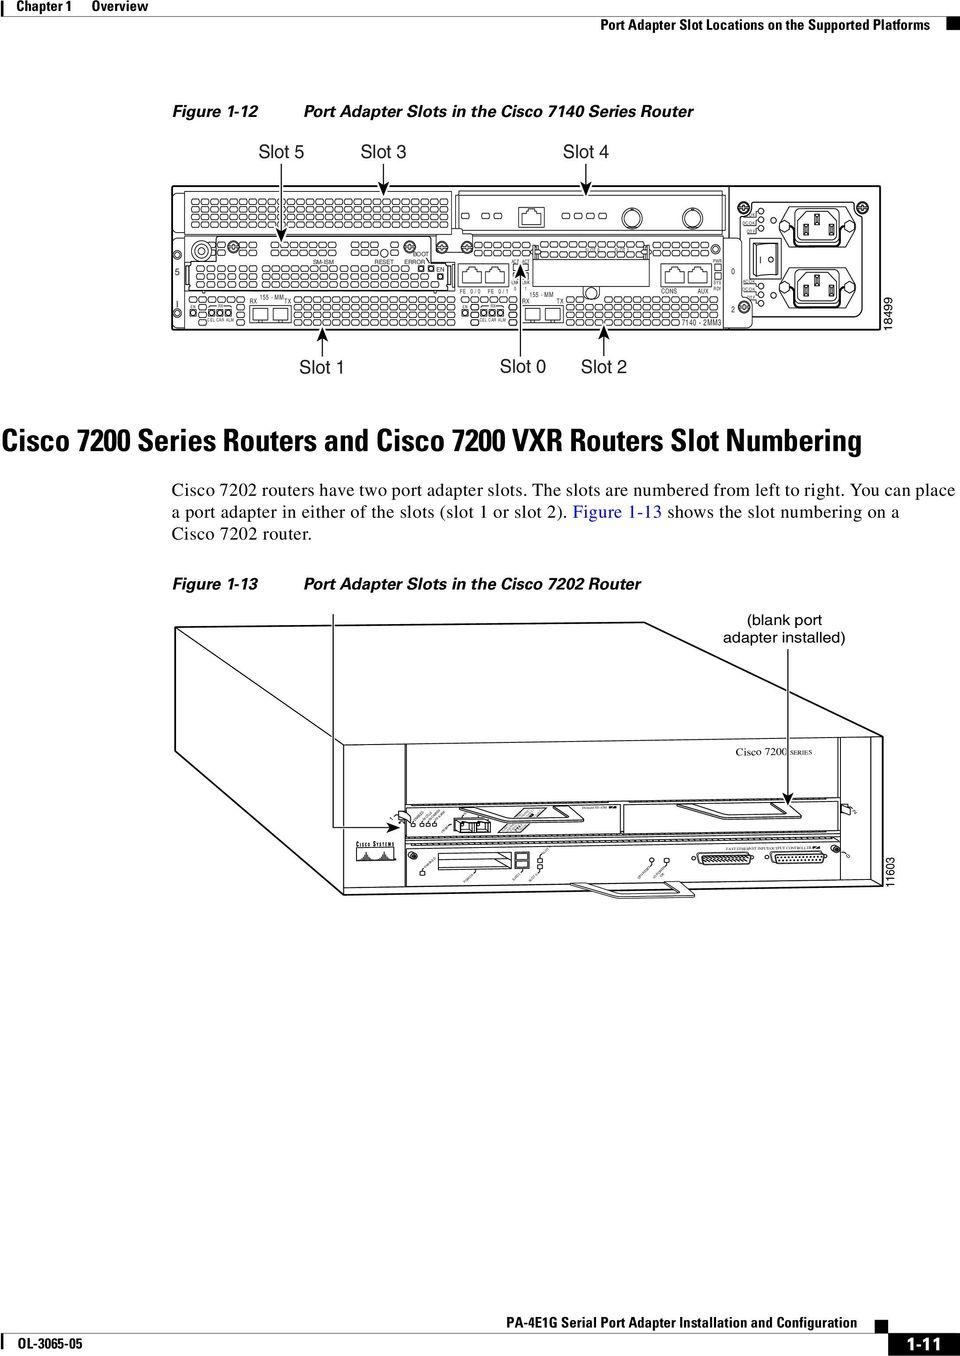 have two port adapter slots. The slots are numbered from left to right. You can place a port adapter in either of the slots (slot or slot ). Figure - shows the slot numbering on a Cisco 7 router.